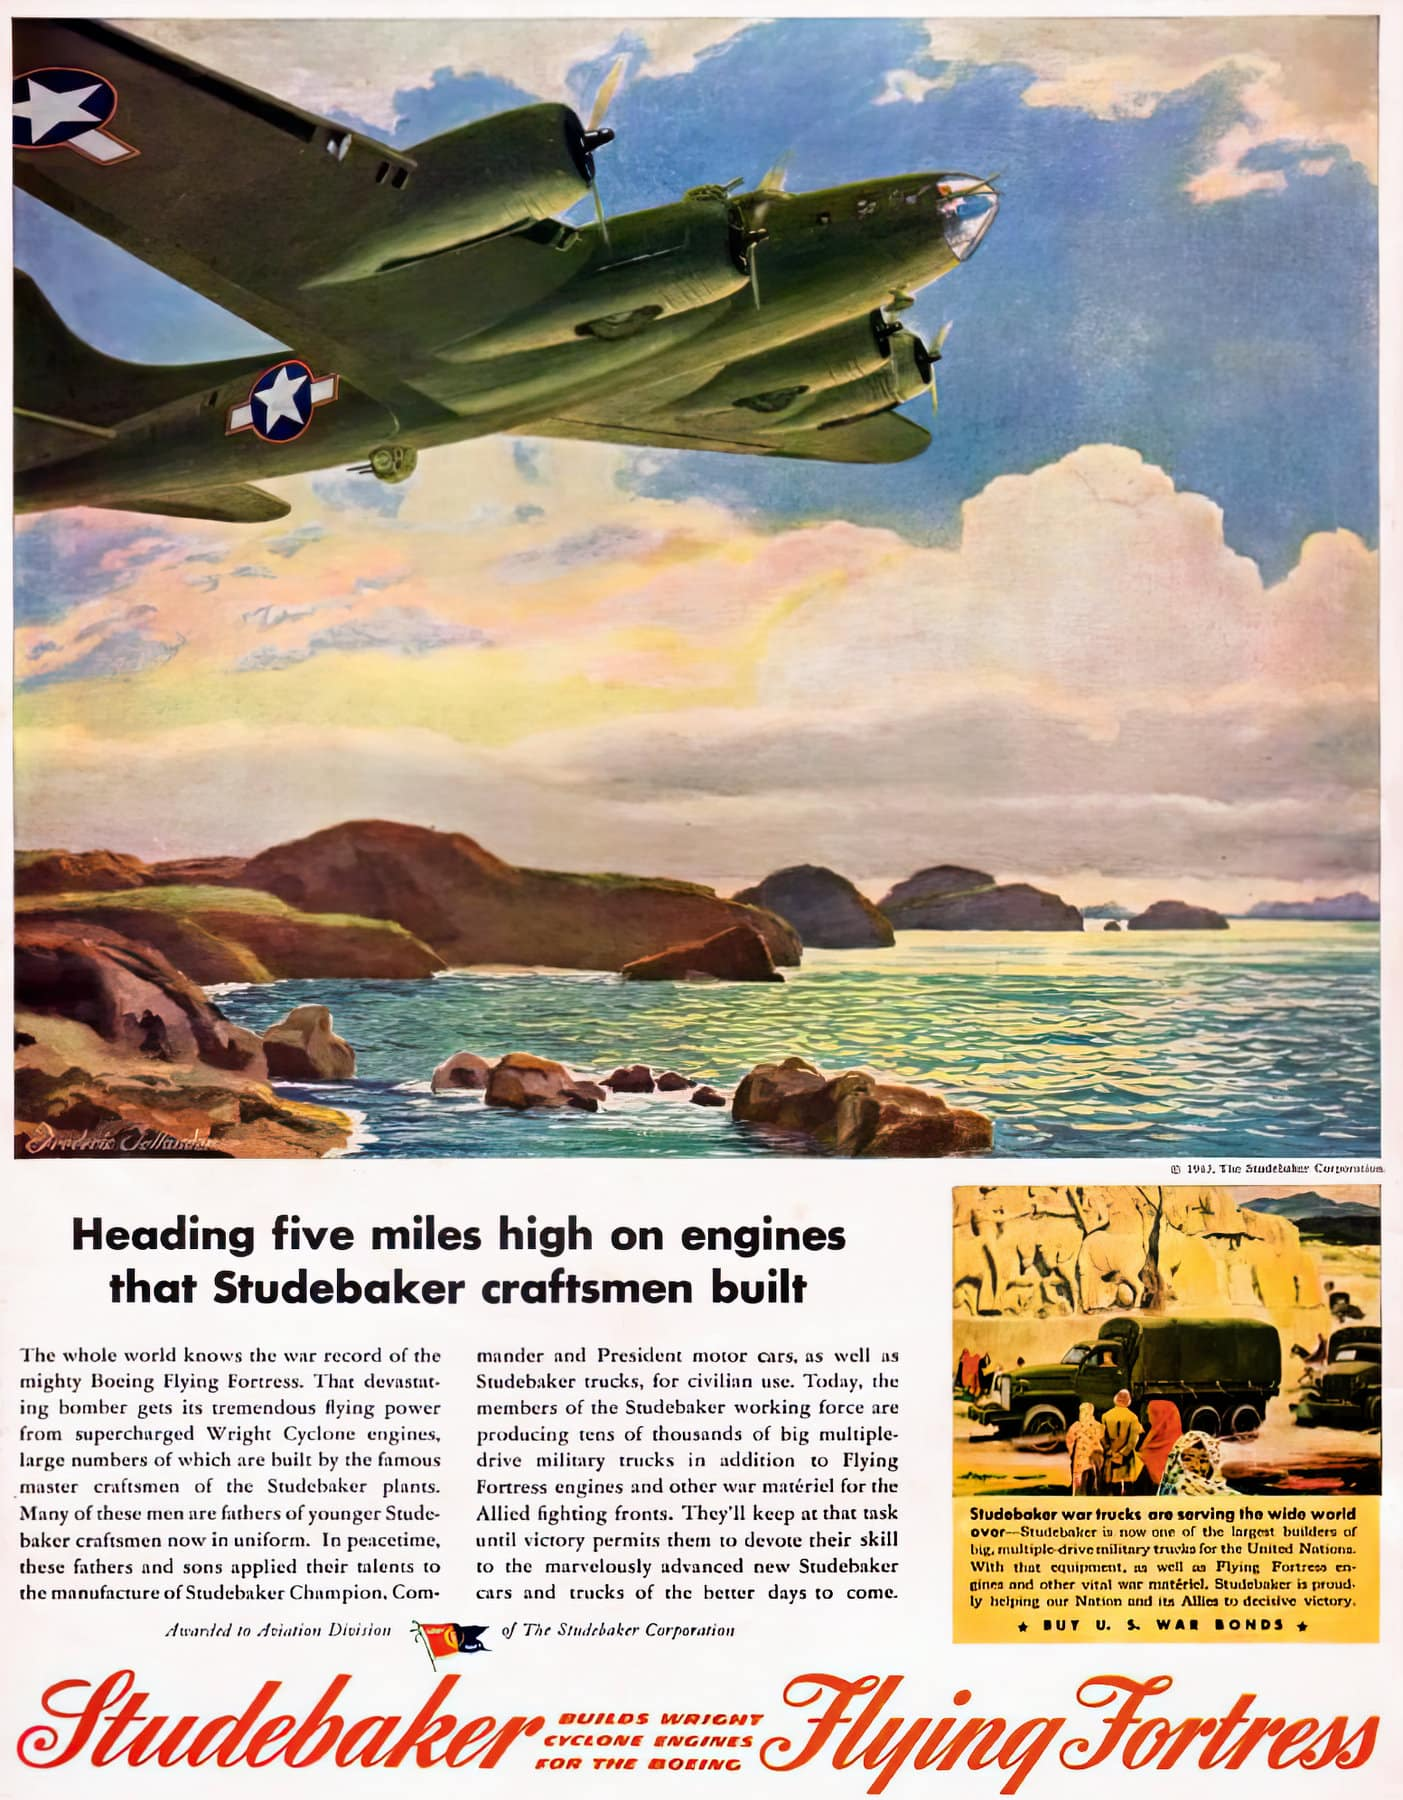 Flying Fortress WWII plane from Studebaker (1943)